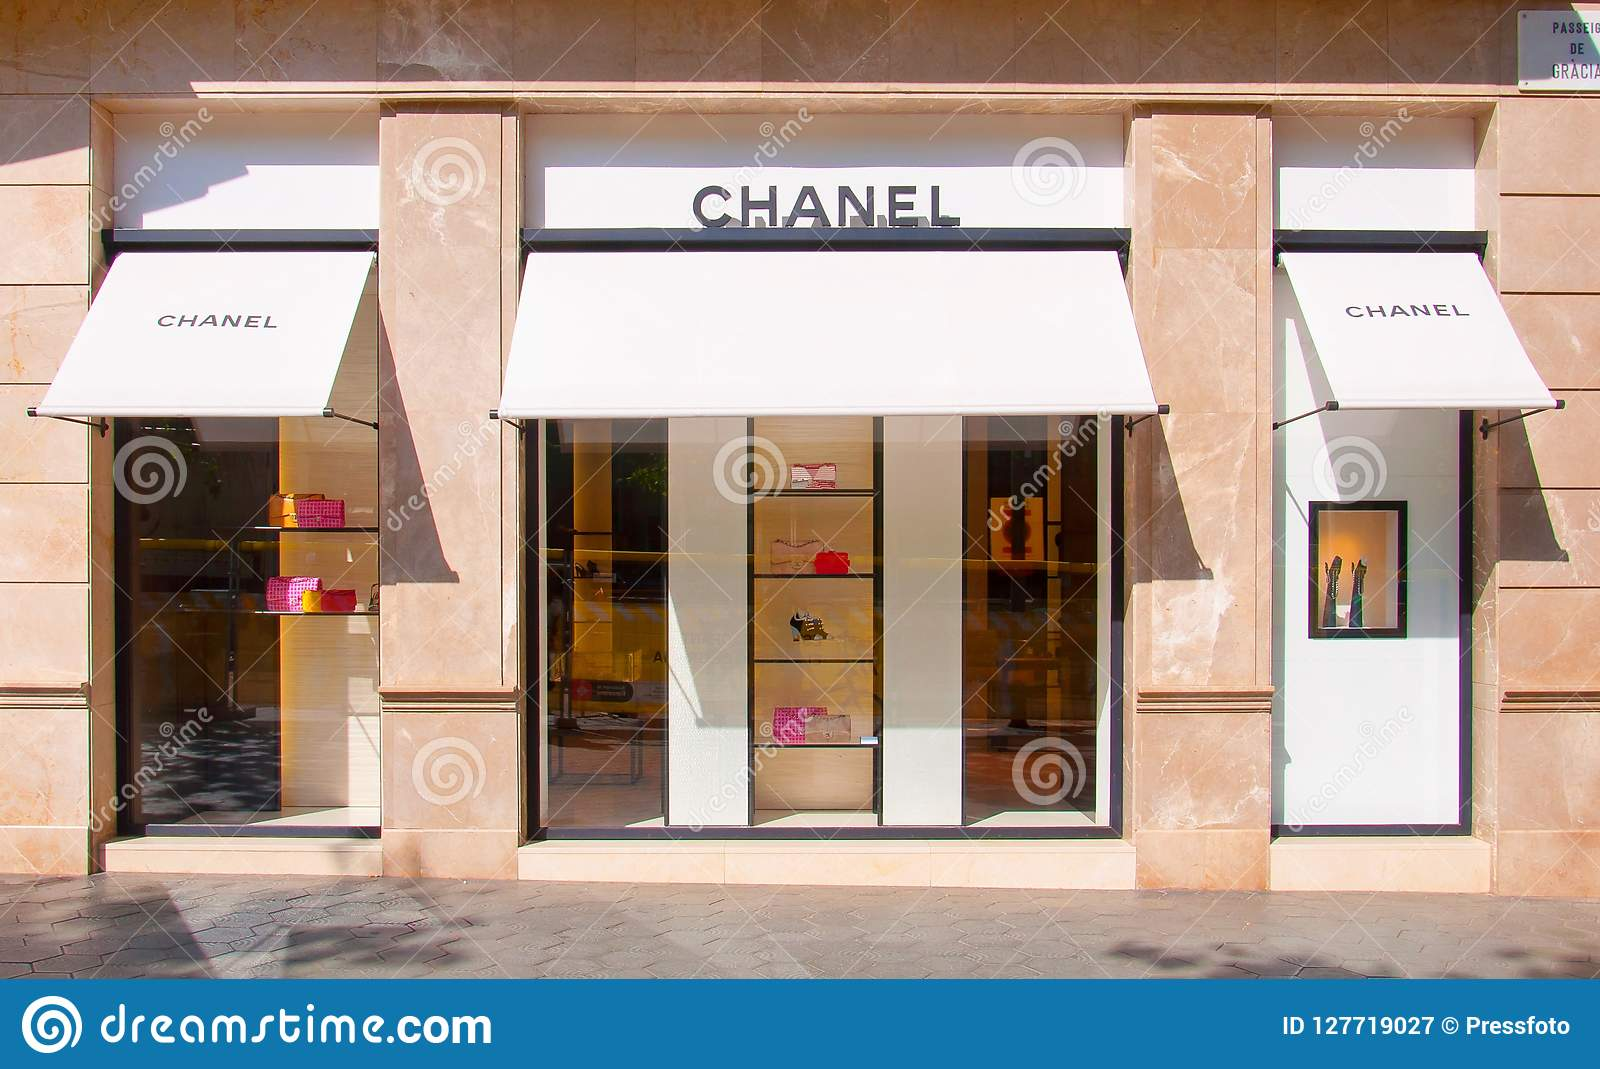 514cbec1b Chanel Brand Store In Barcelona, Spain Editorial Photography - Image ...